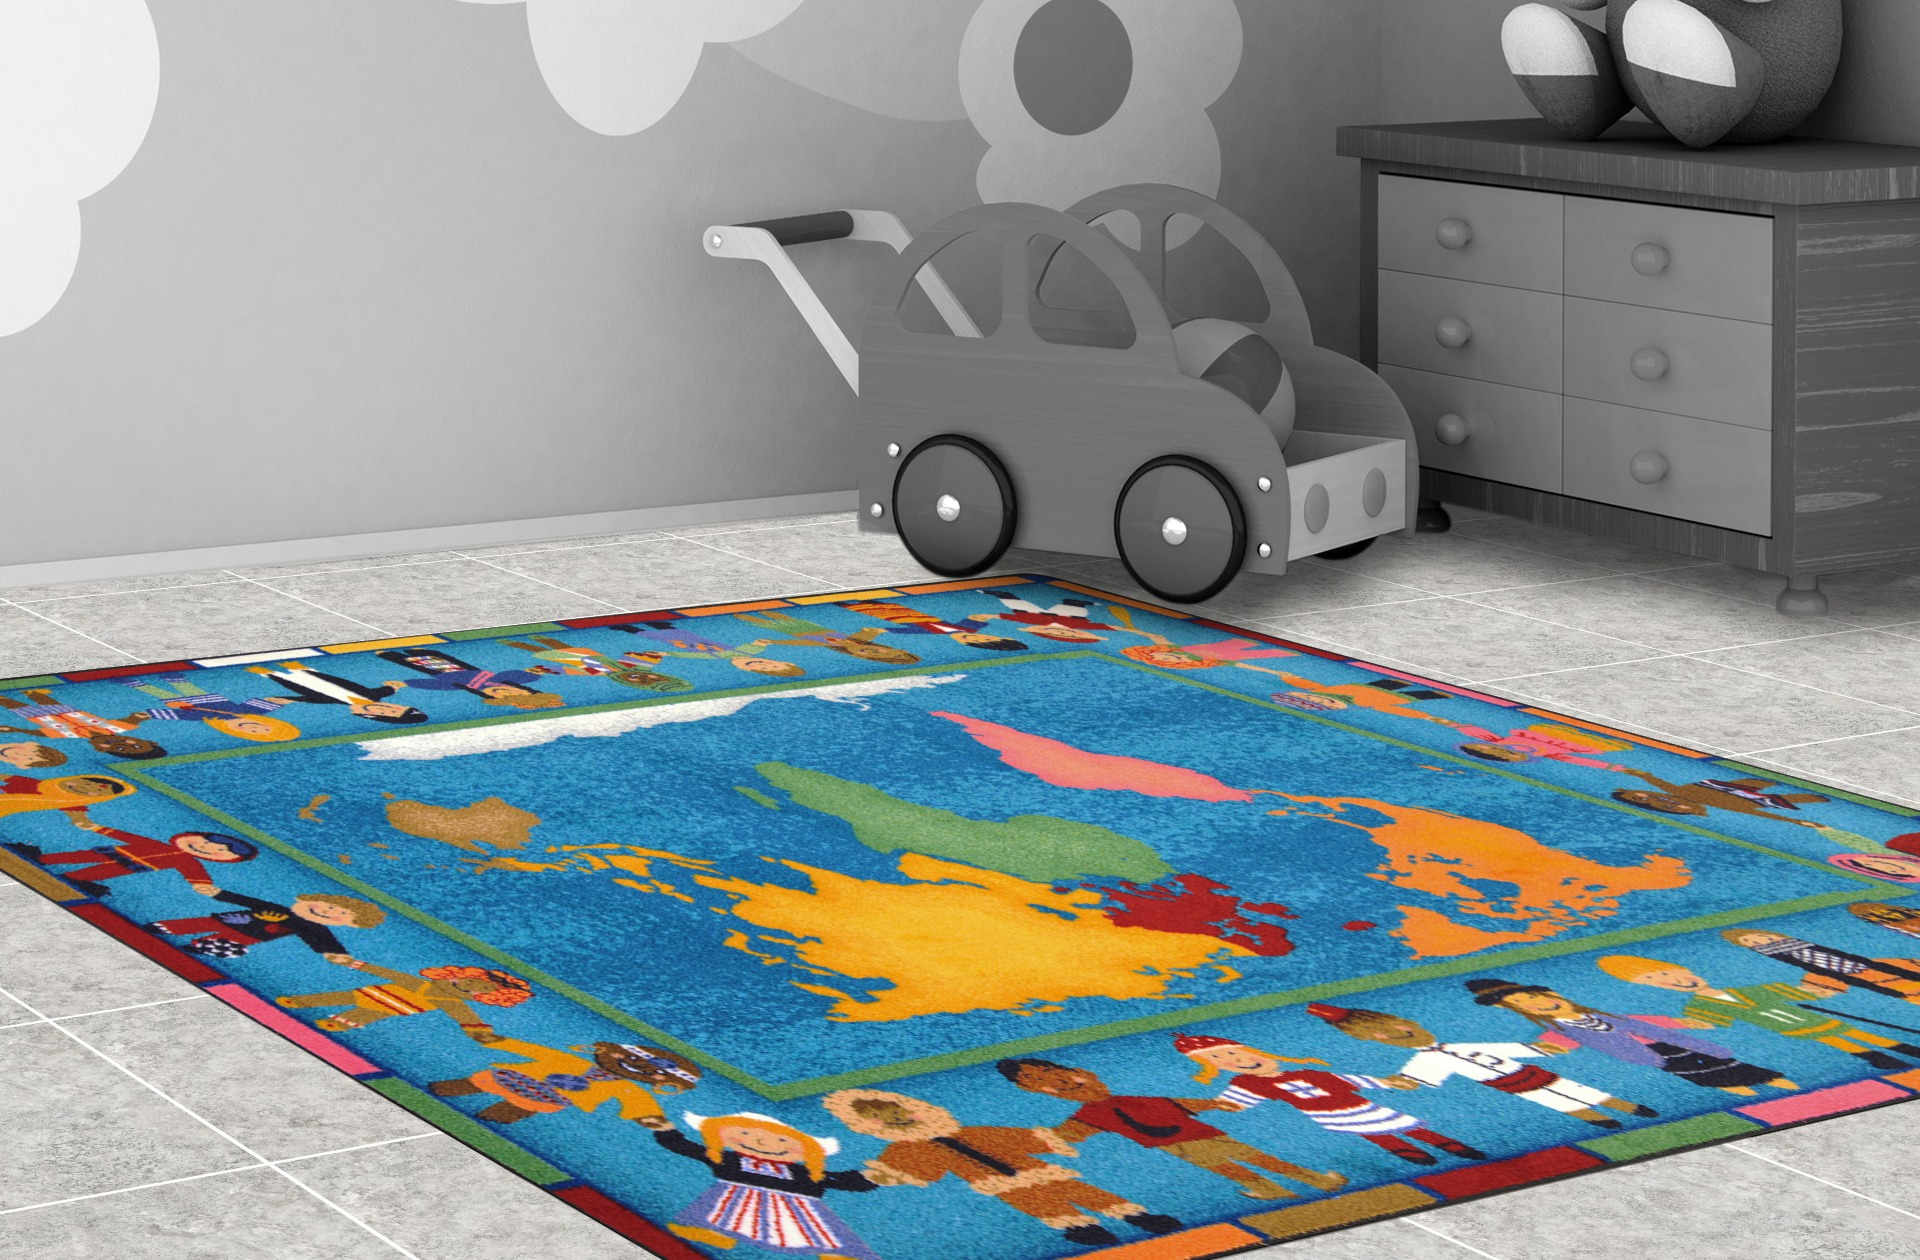 world map rug for clroom with Hands Around The World Rug on Map Rug Kids as well Hands Around The World Rug additionally Paco Pump Diagram additionally World Map Area Rug besides Us Map And Oceans.